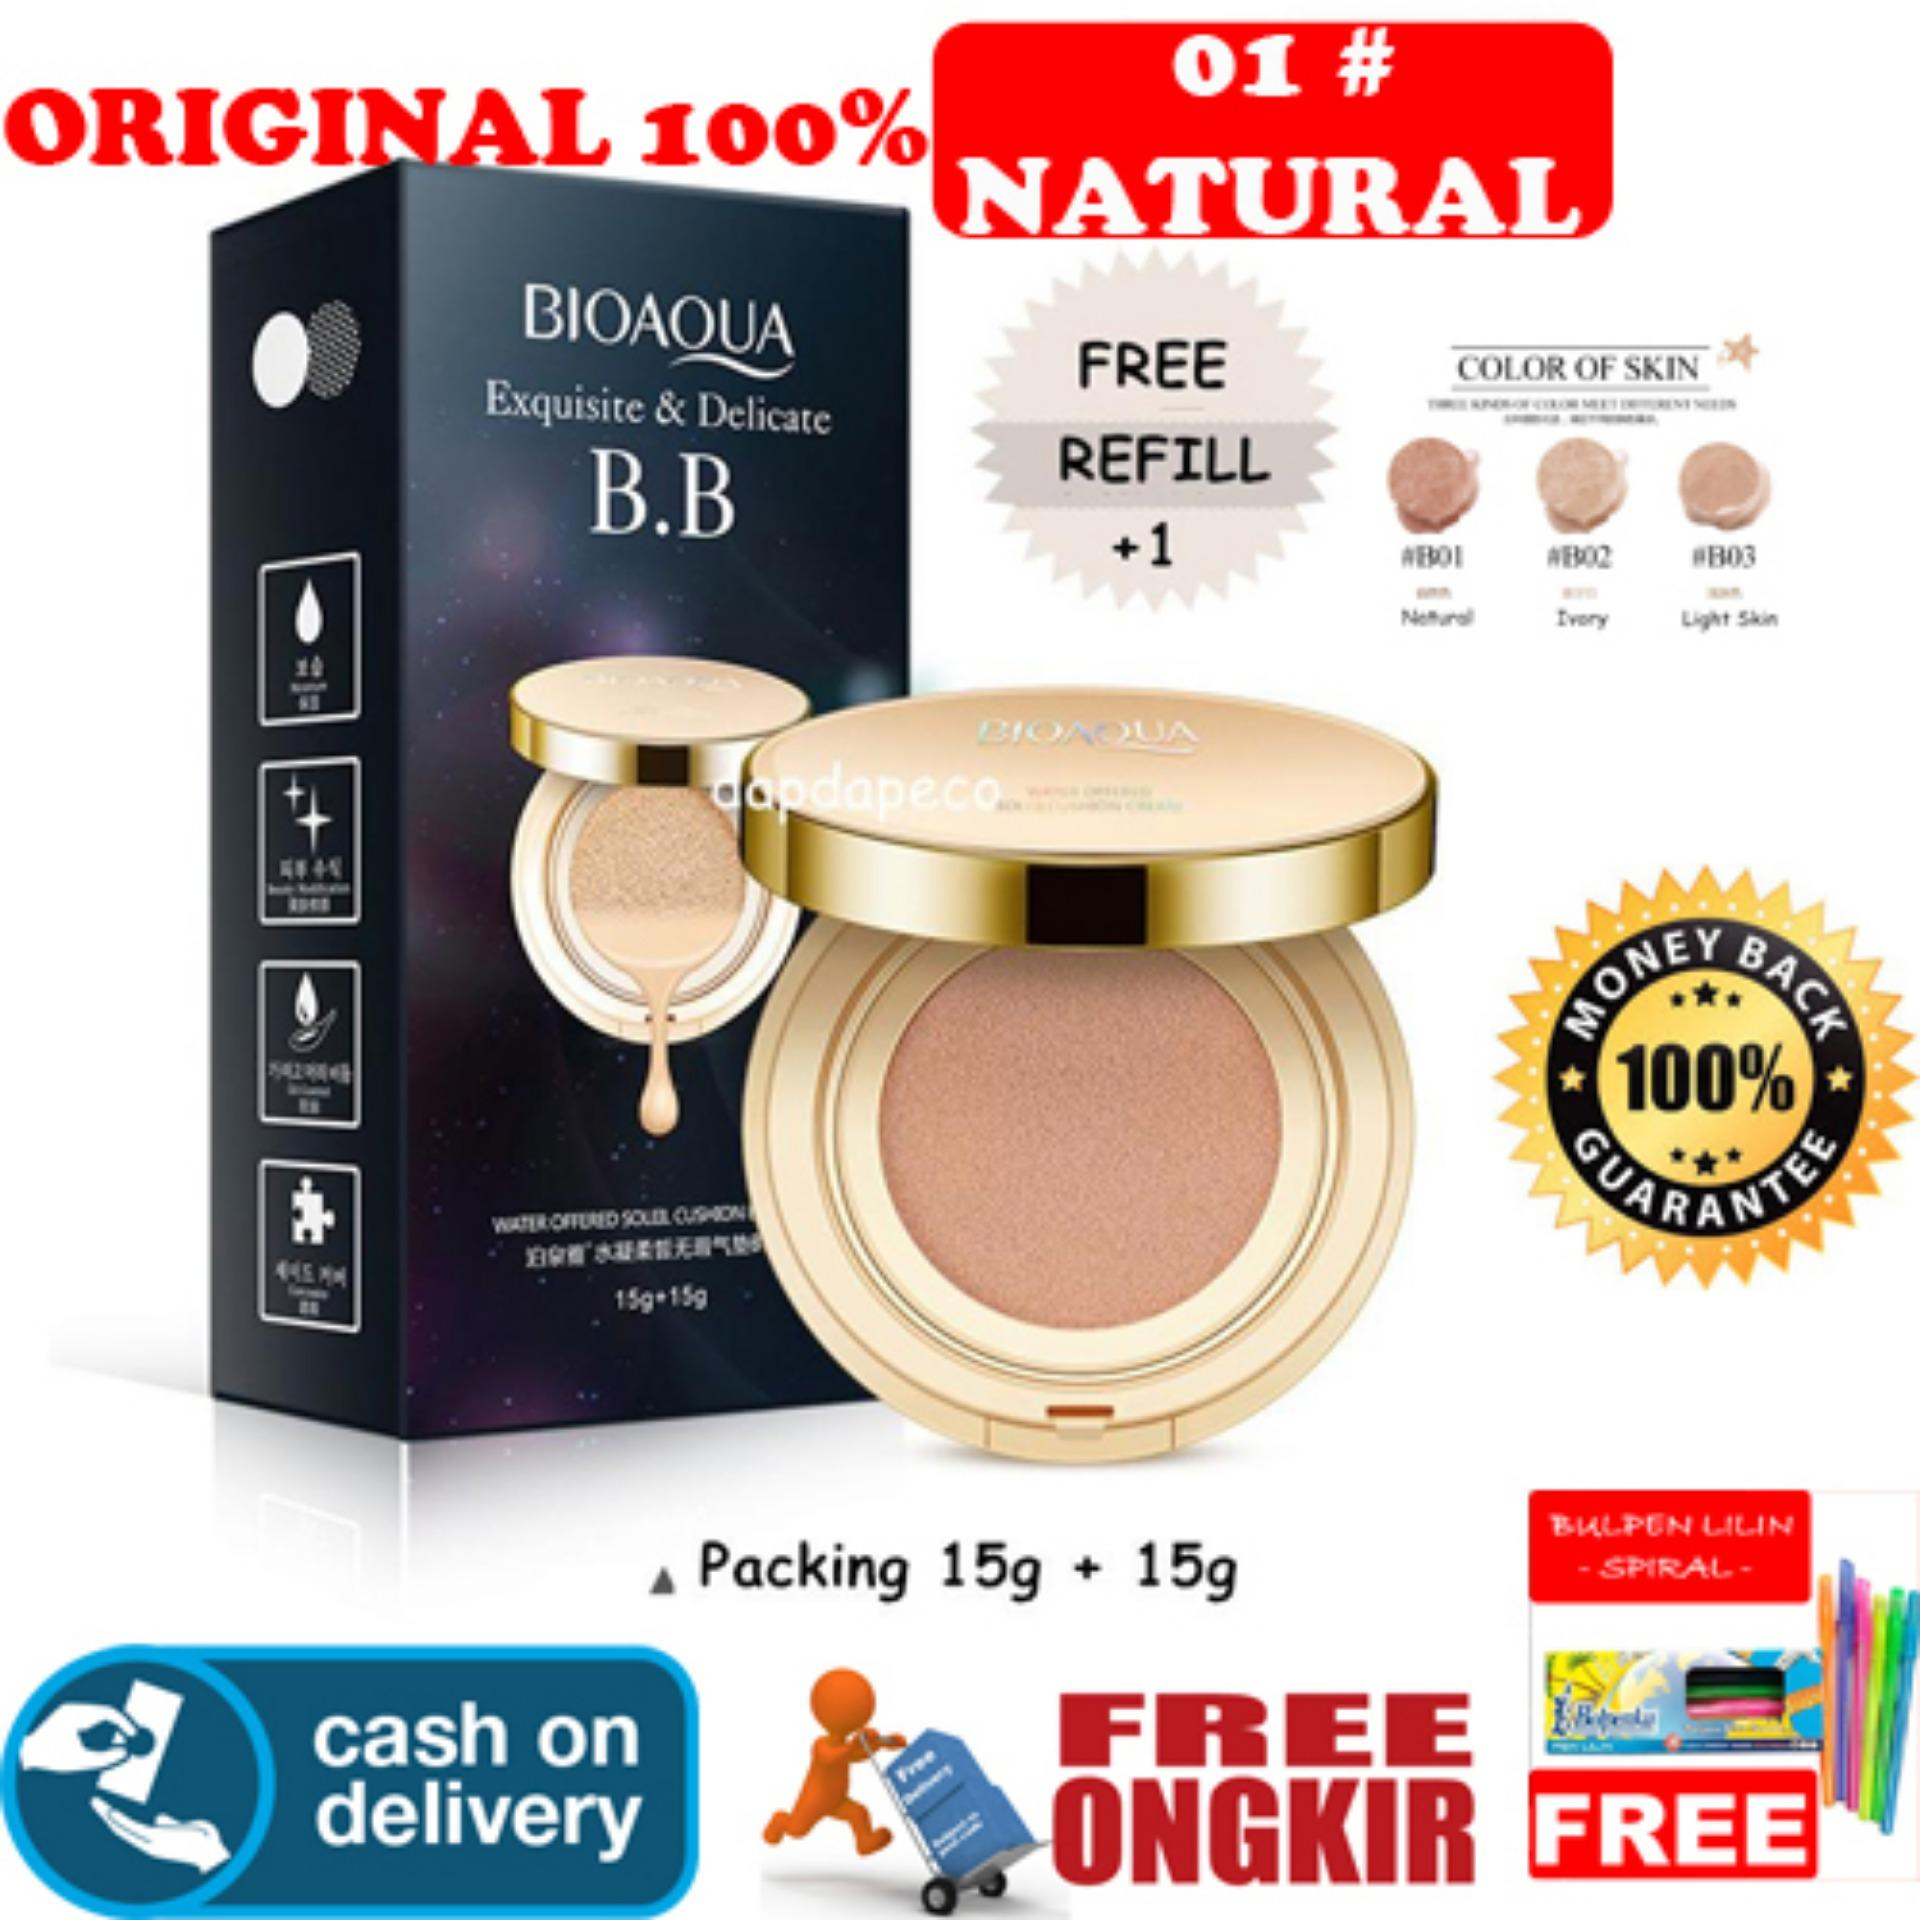 HOKI COD [01] Natural Bioaqua Exquisite and Delicate BB Cream Air Cushion